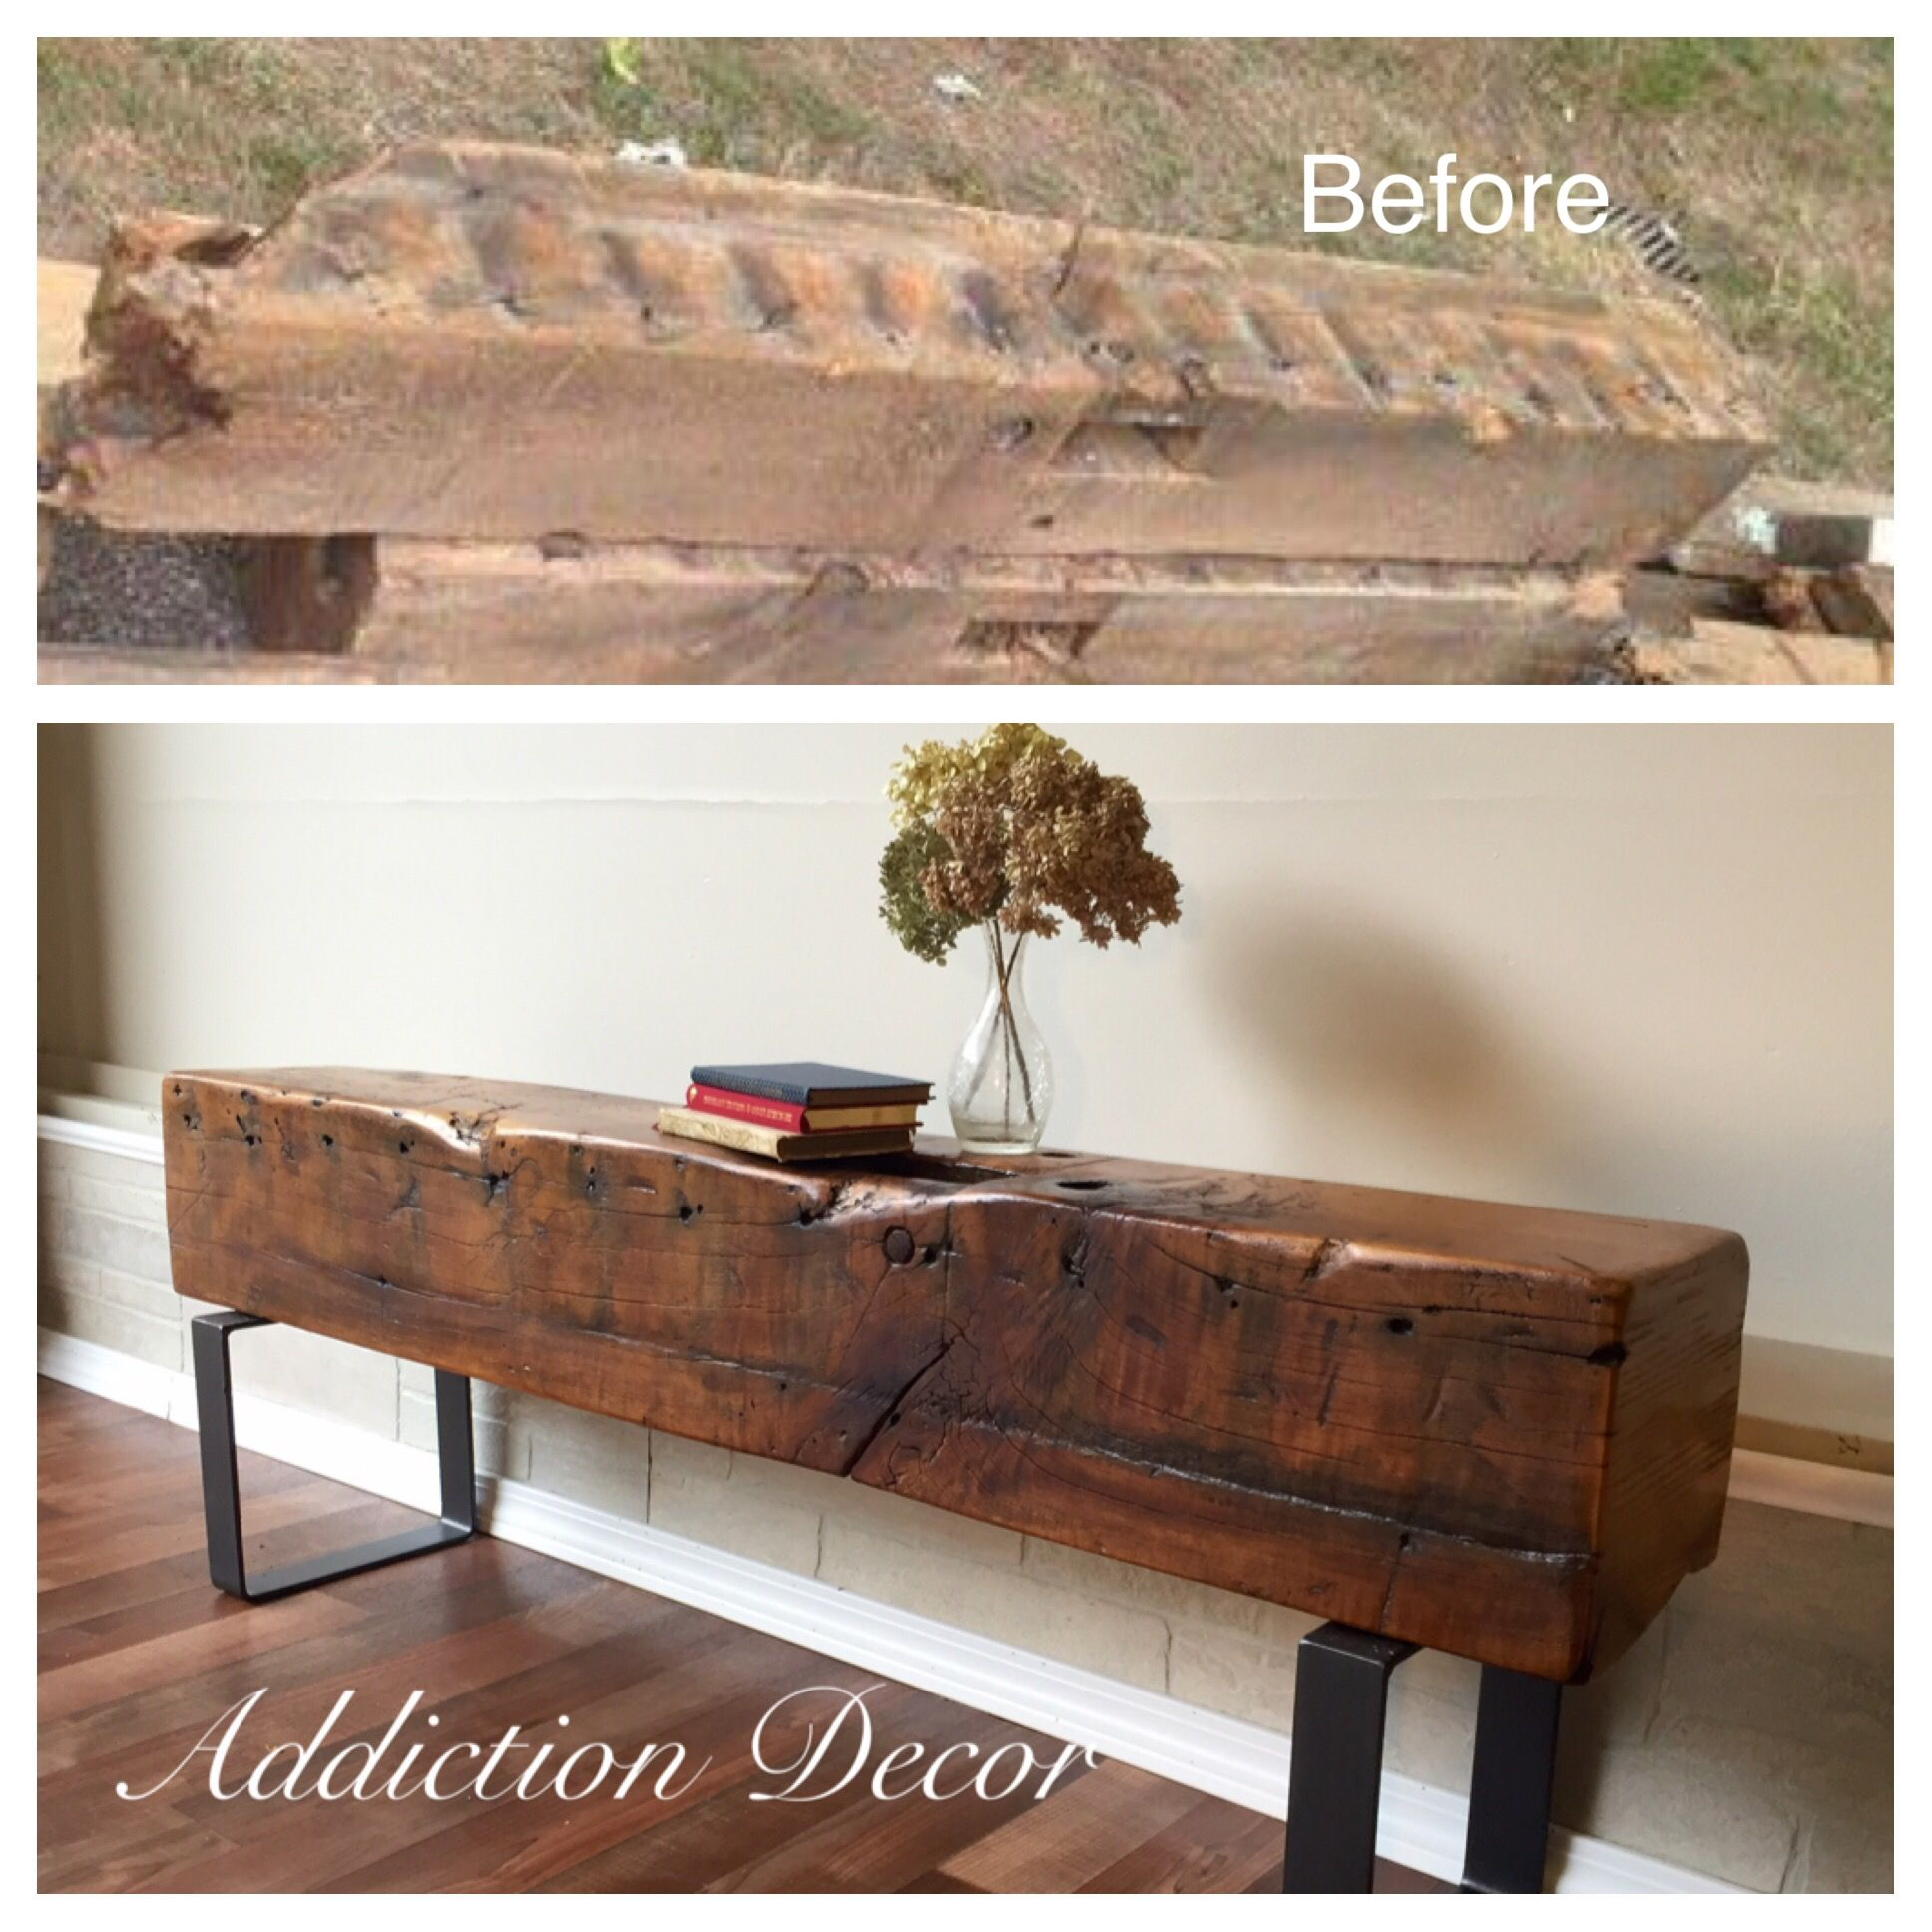 Pin On Furniture Makeovers By Addiction Decor